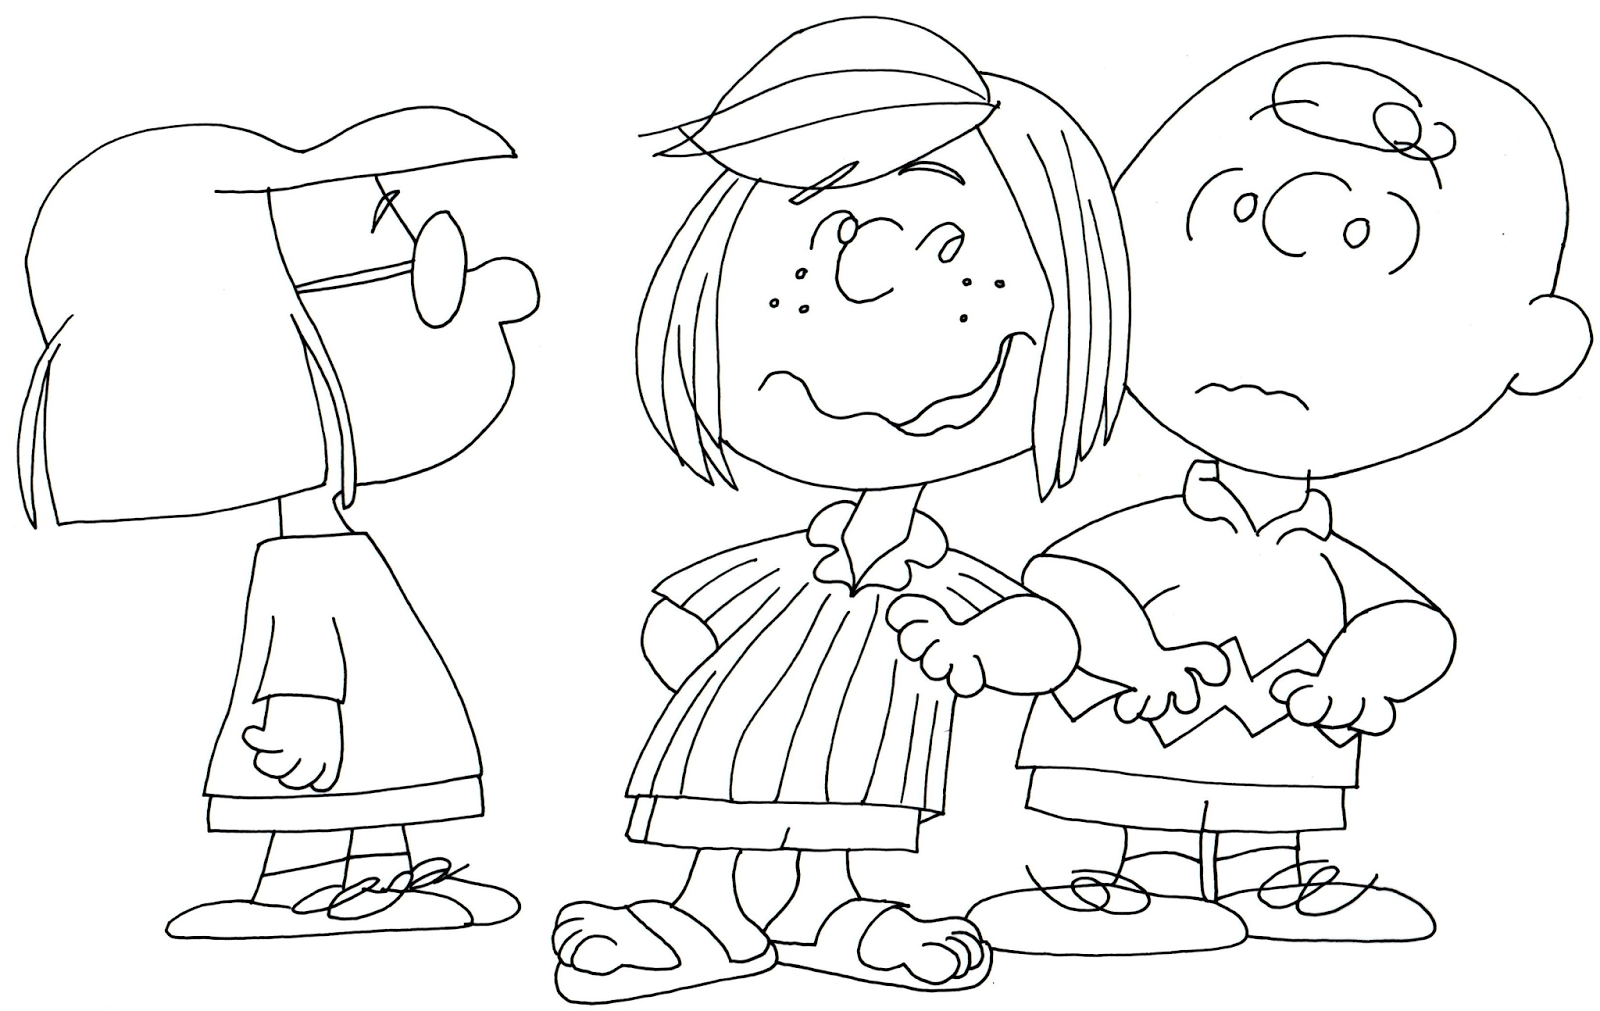 Free Charlie Brown Snoopy and Peanuts Coloring Pages: Marcie ...